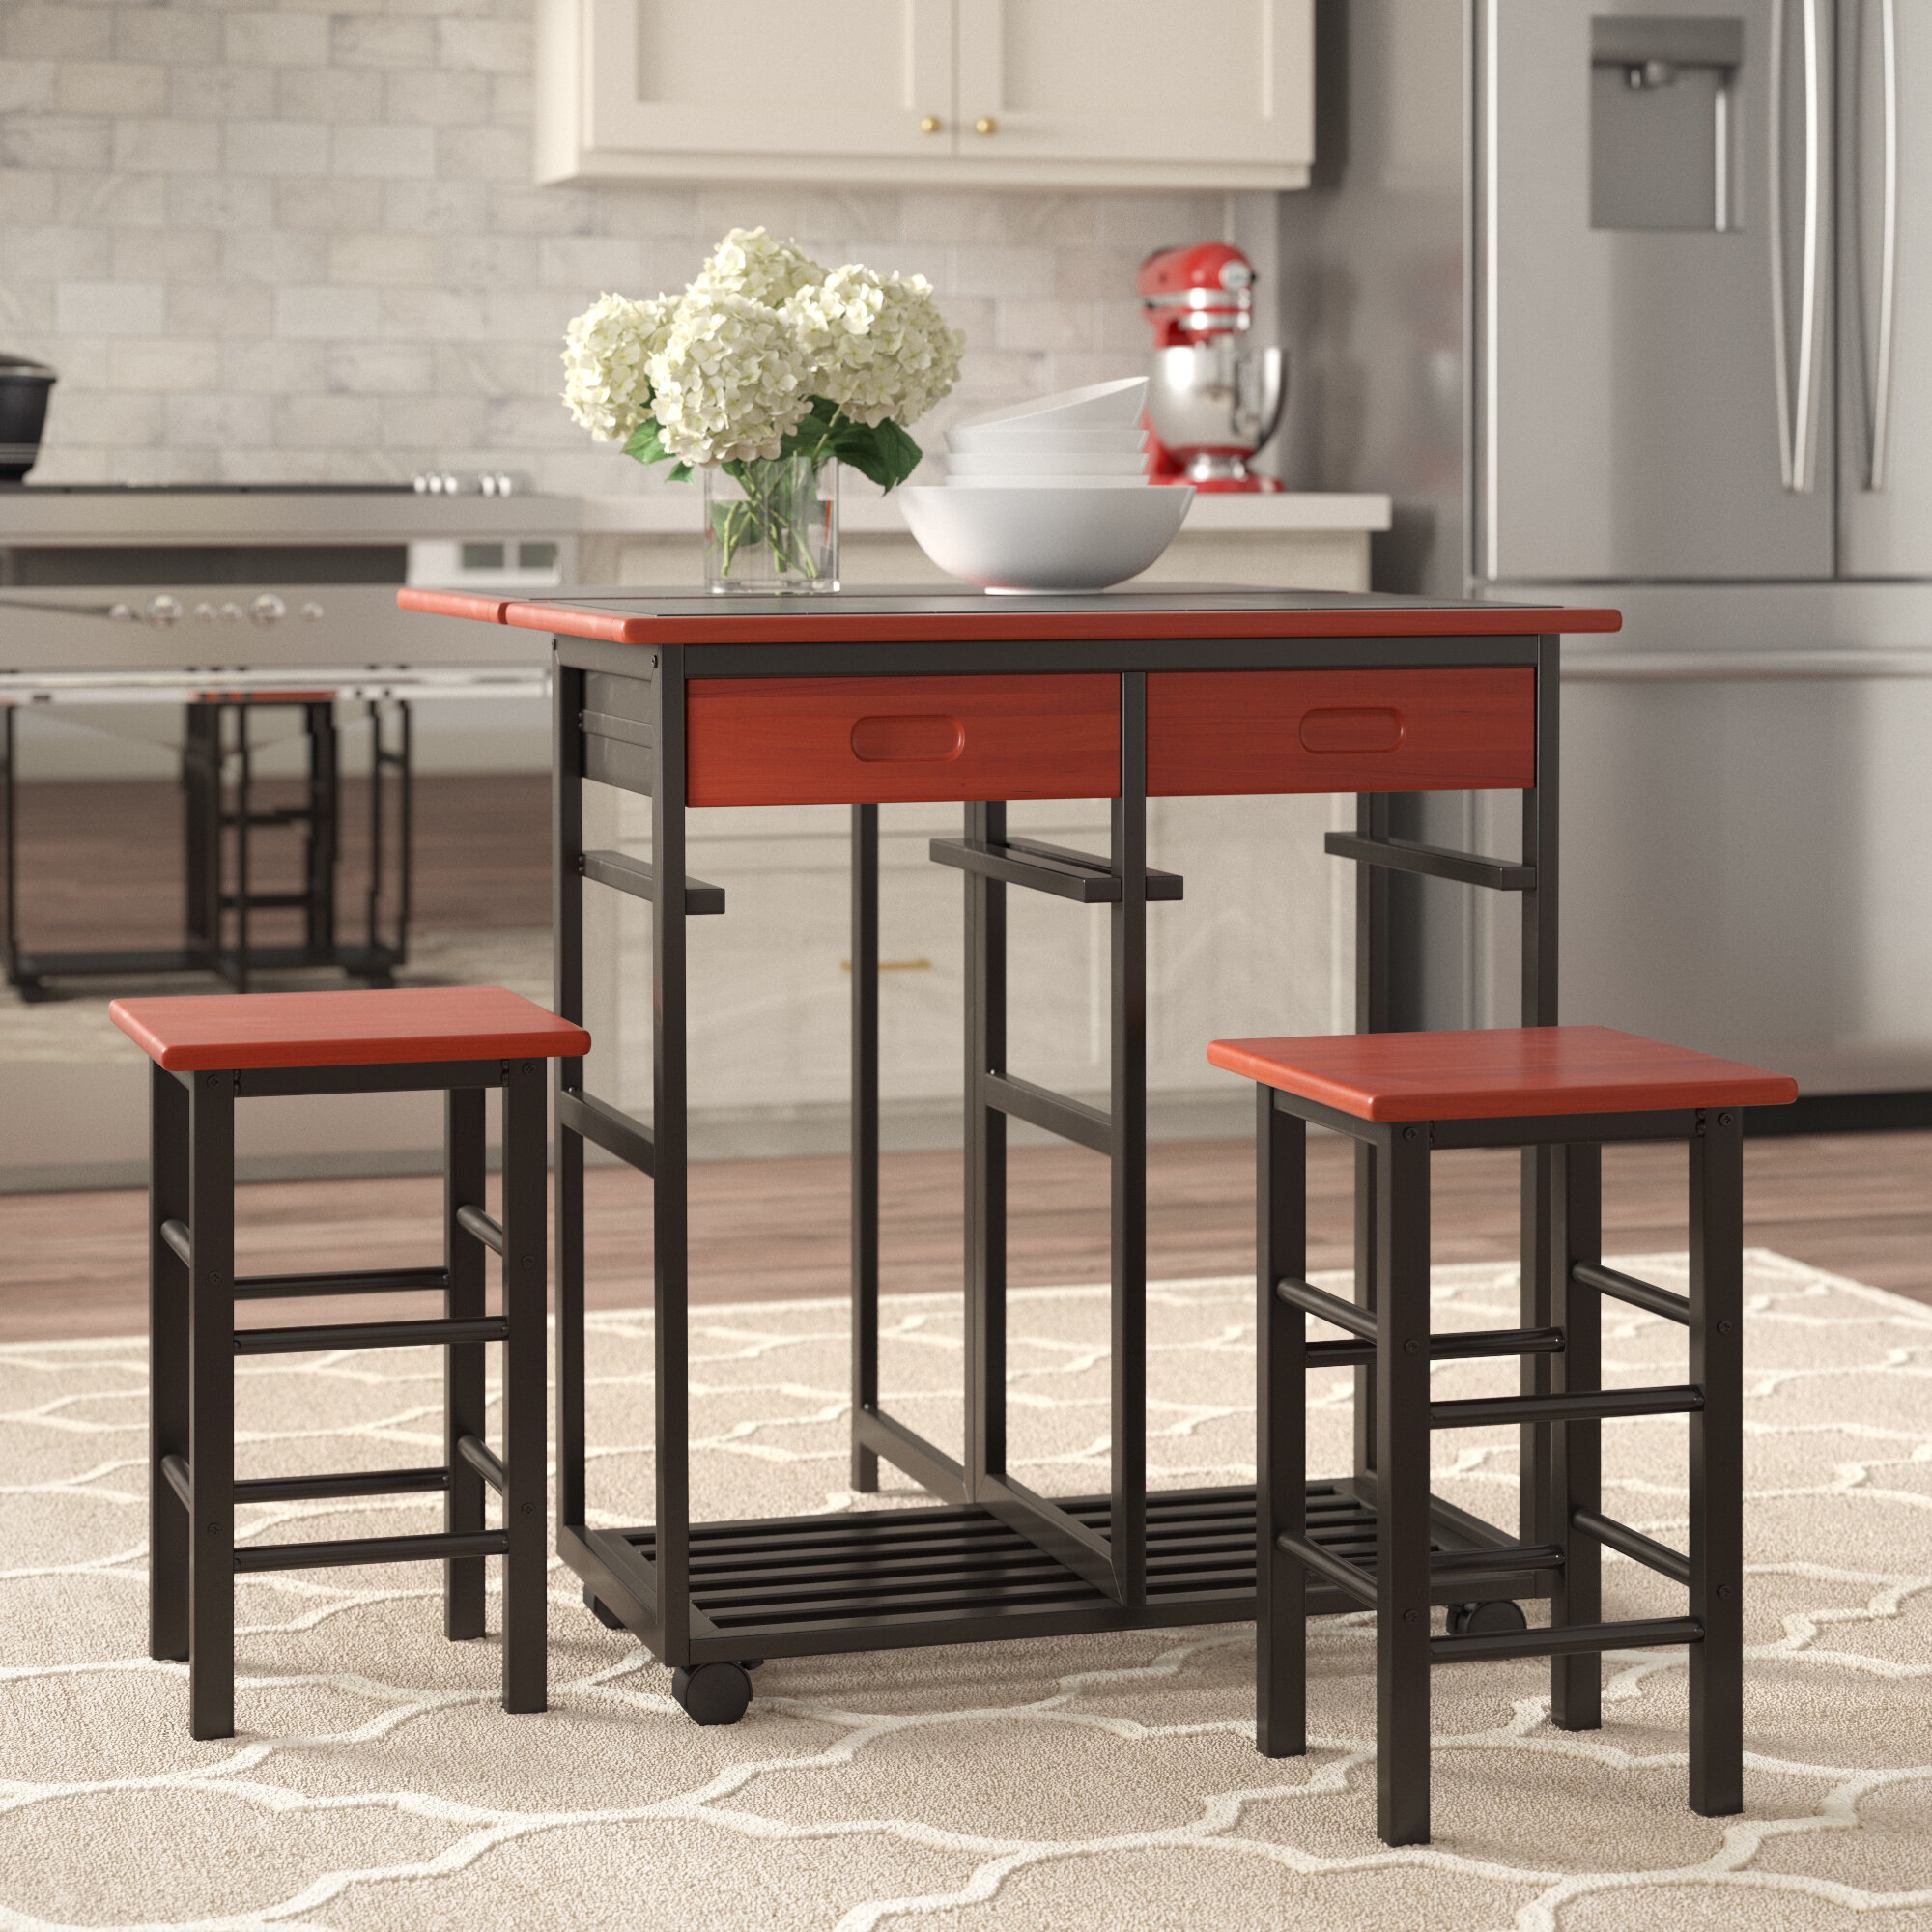 Space Saving Folding Table W 2 Stools And 2 Drawers Zenstyle Wood Drop Leaf Kitchen Rolling Cart Set 3 Piece Table Dinning Set Breakfast Bar Kitchen Island Trolley Cart Table Chair Sets